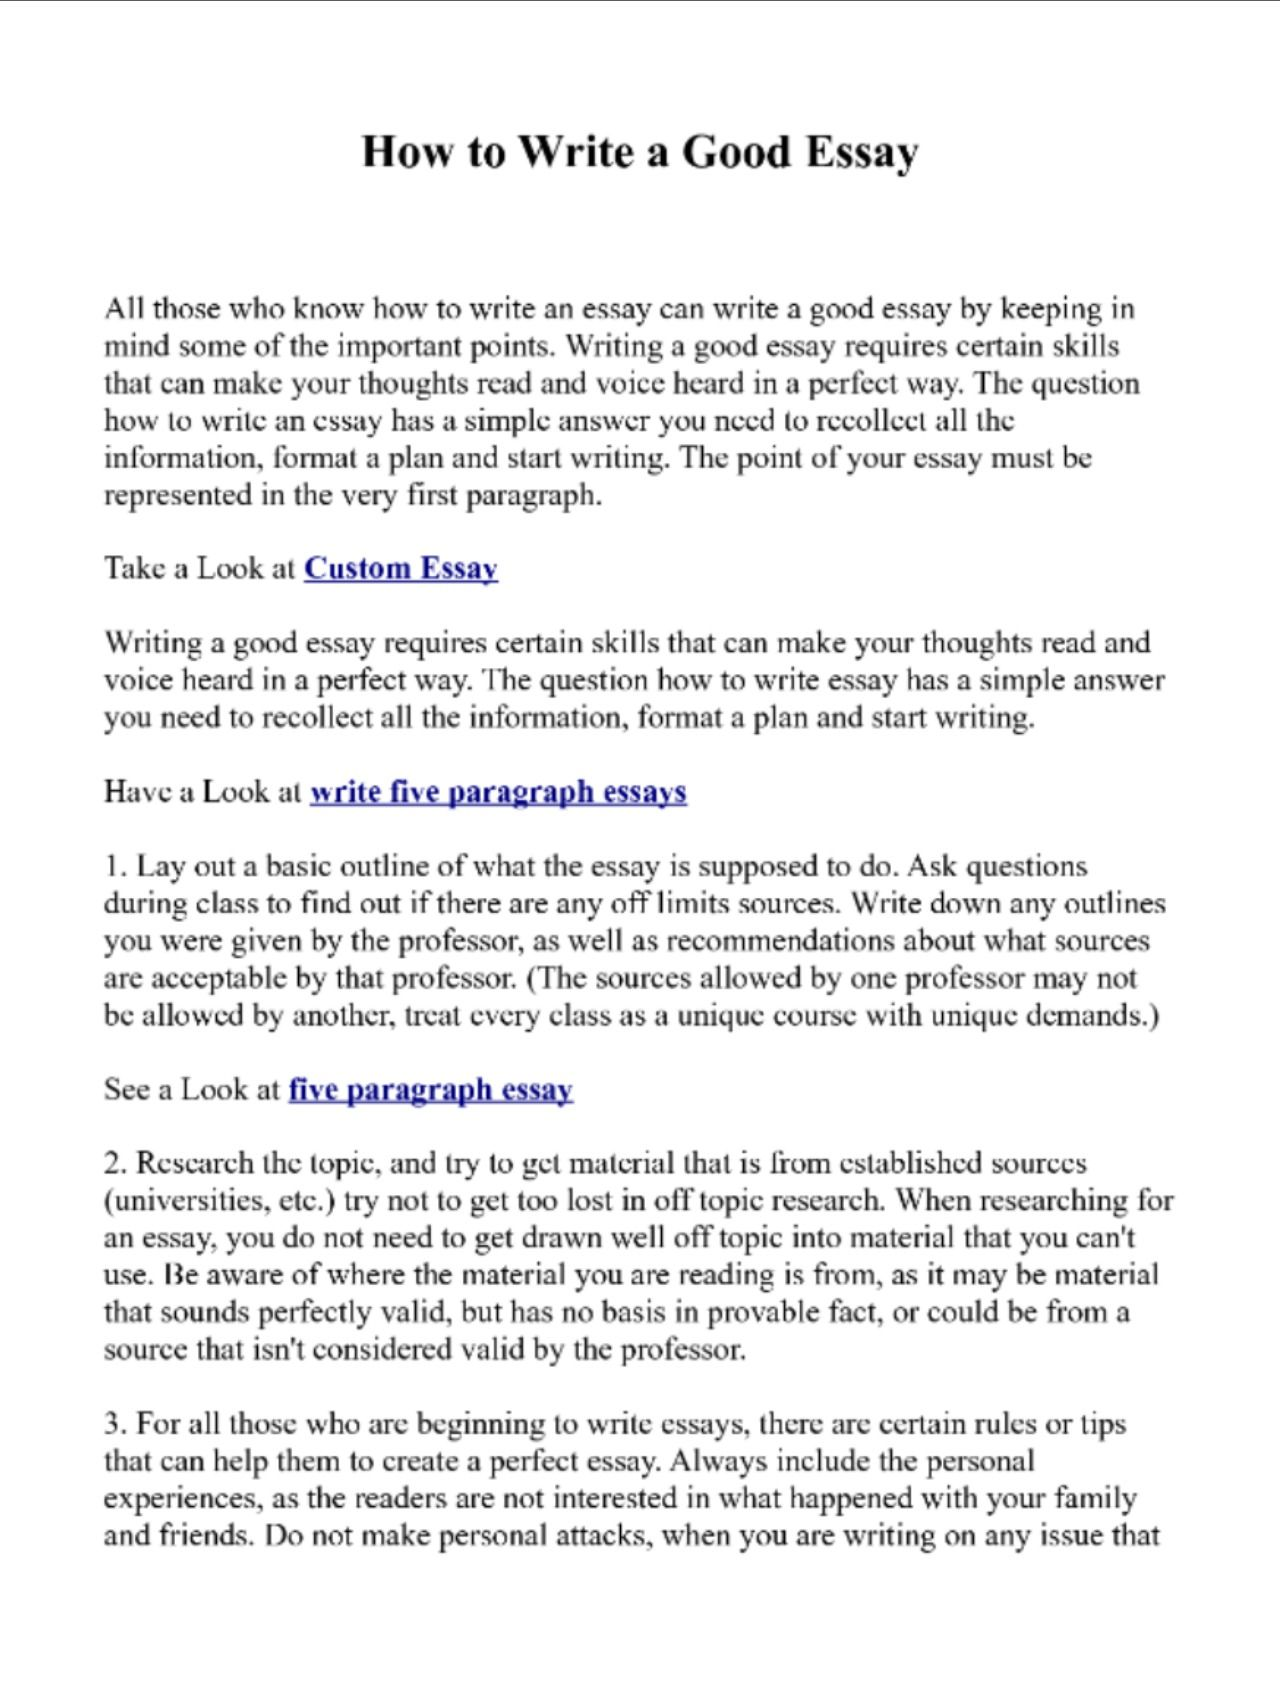 How To Write Good Essay